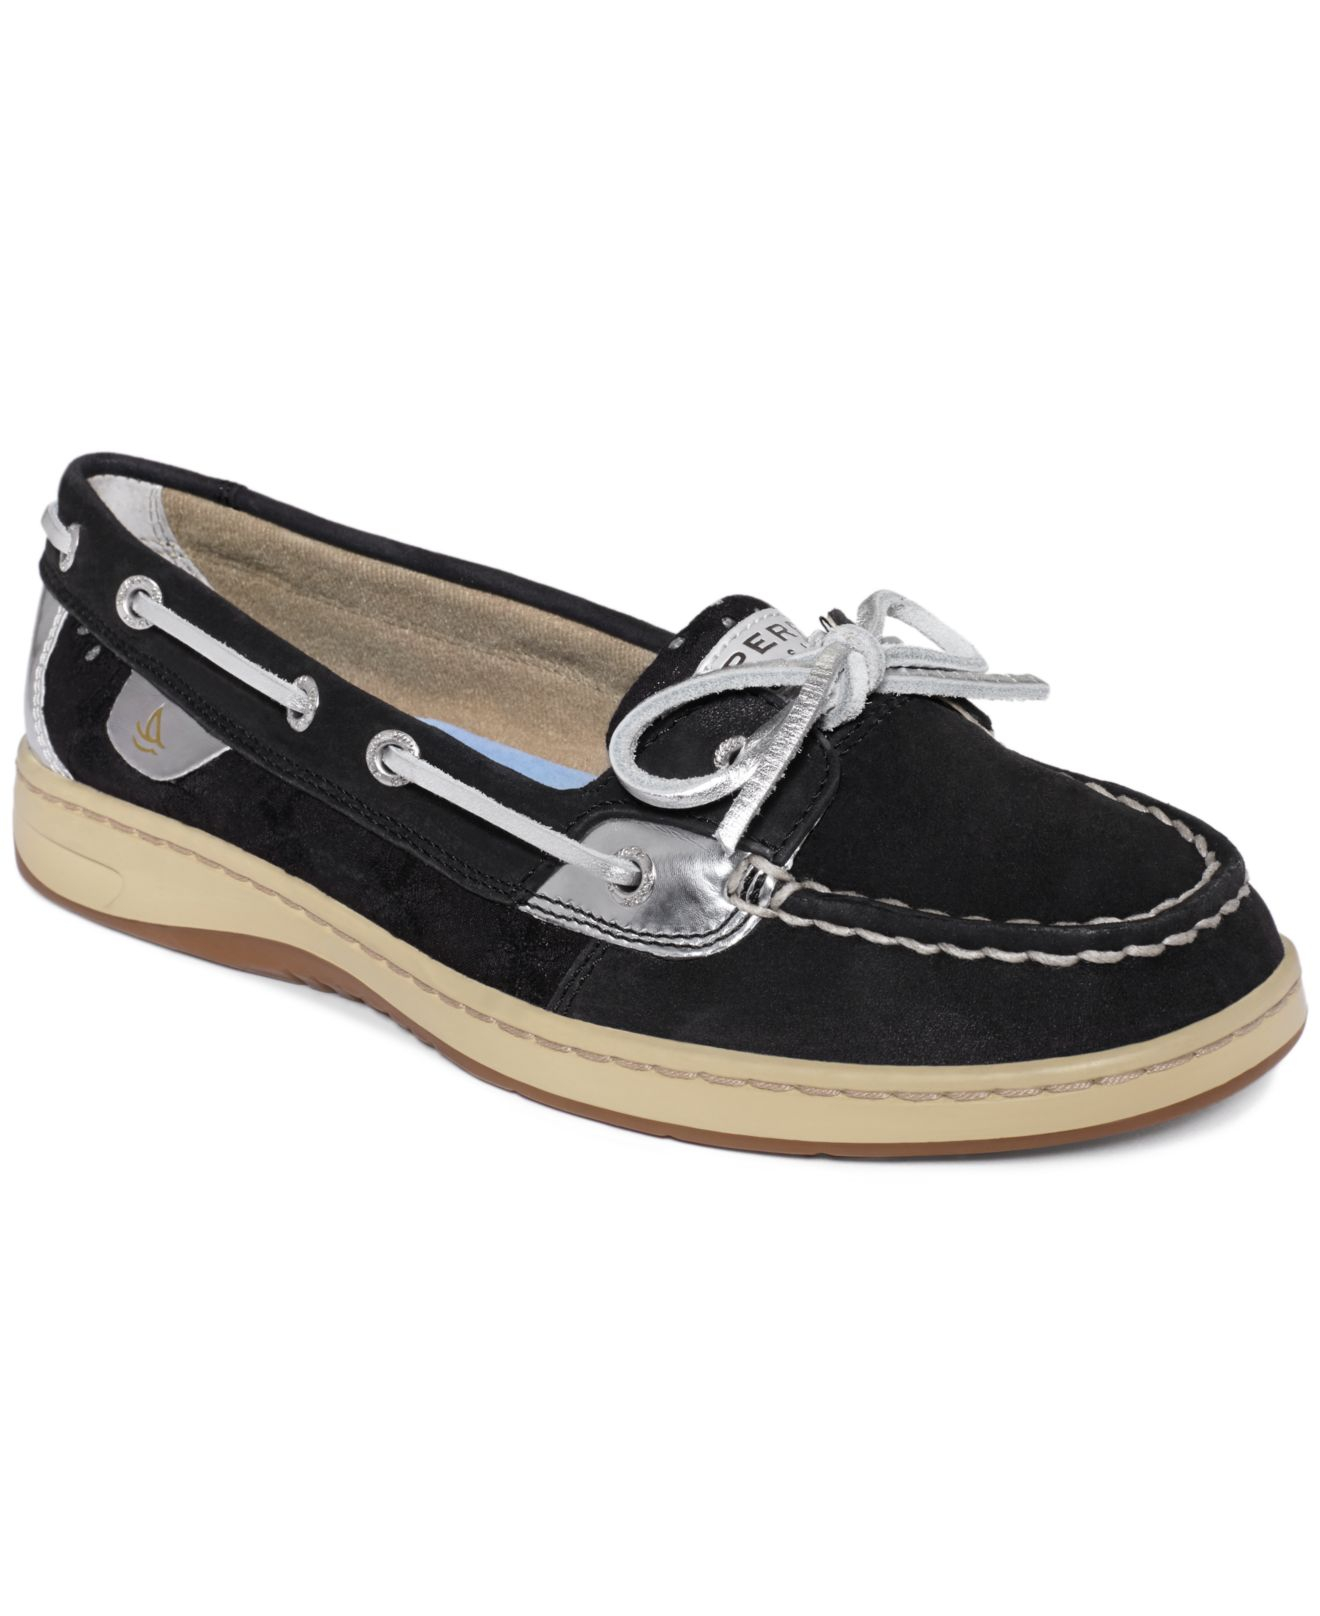 Sperry top-sider Women'S Angelfish Boat Shoes in Black | Lyst